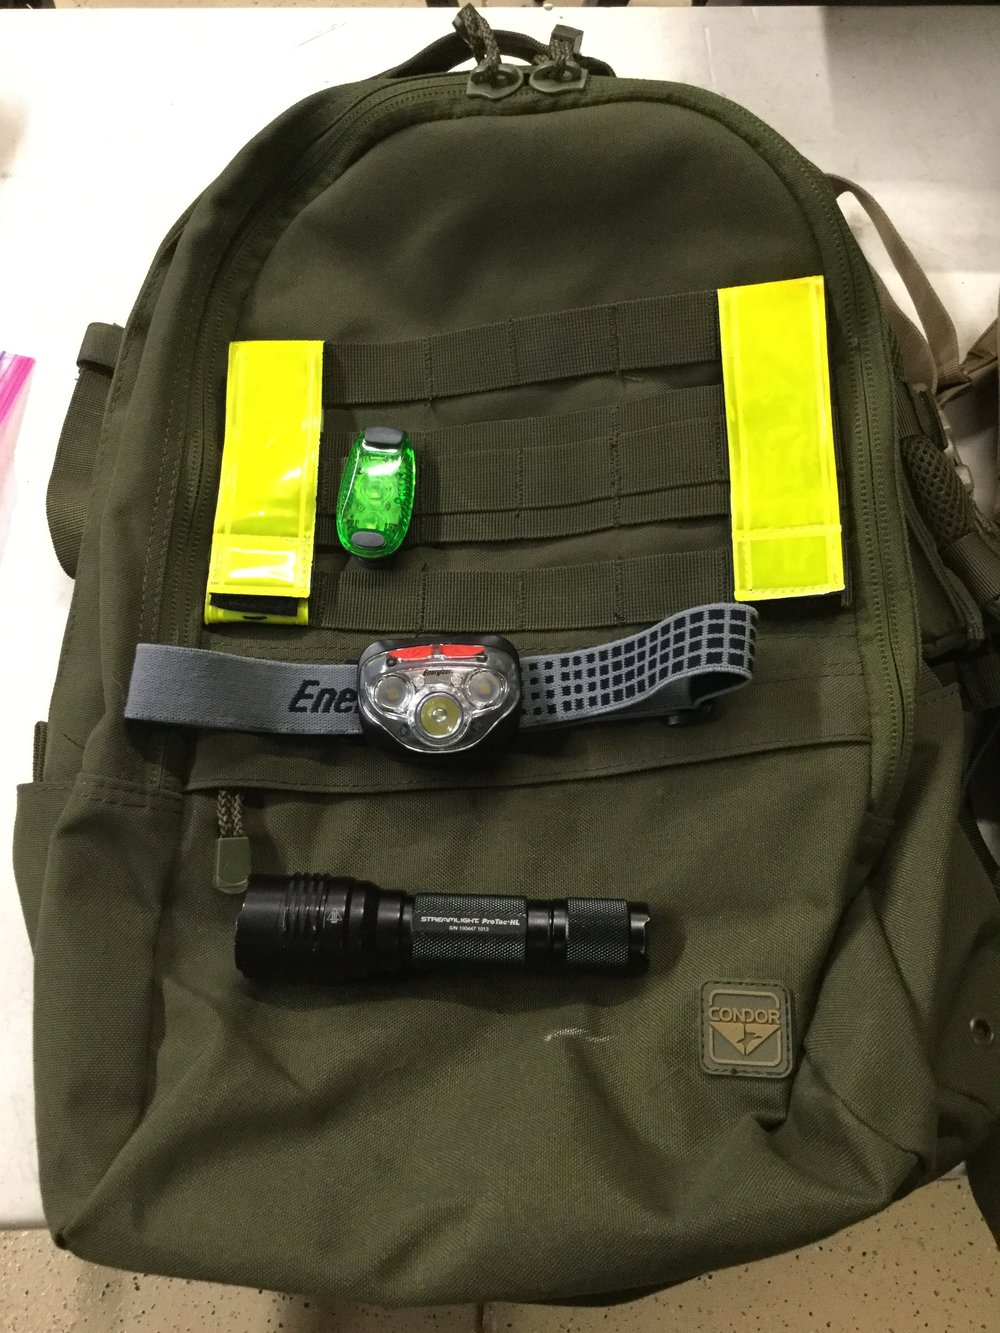 My ruck equipment optimized for night operations. Reflective bands, flashing strobe, headlamp, and tactical light.